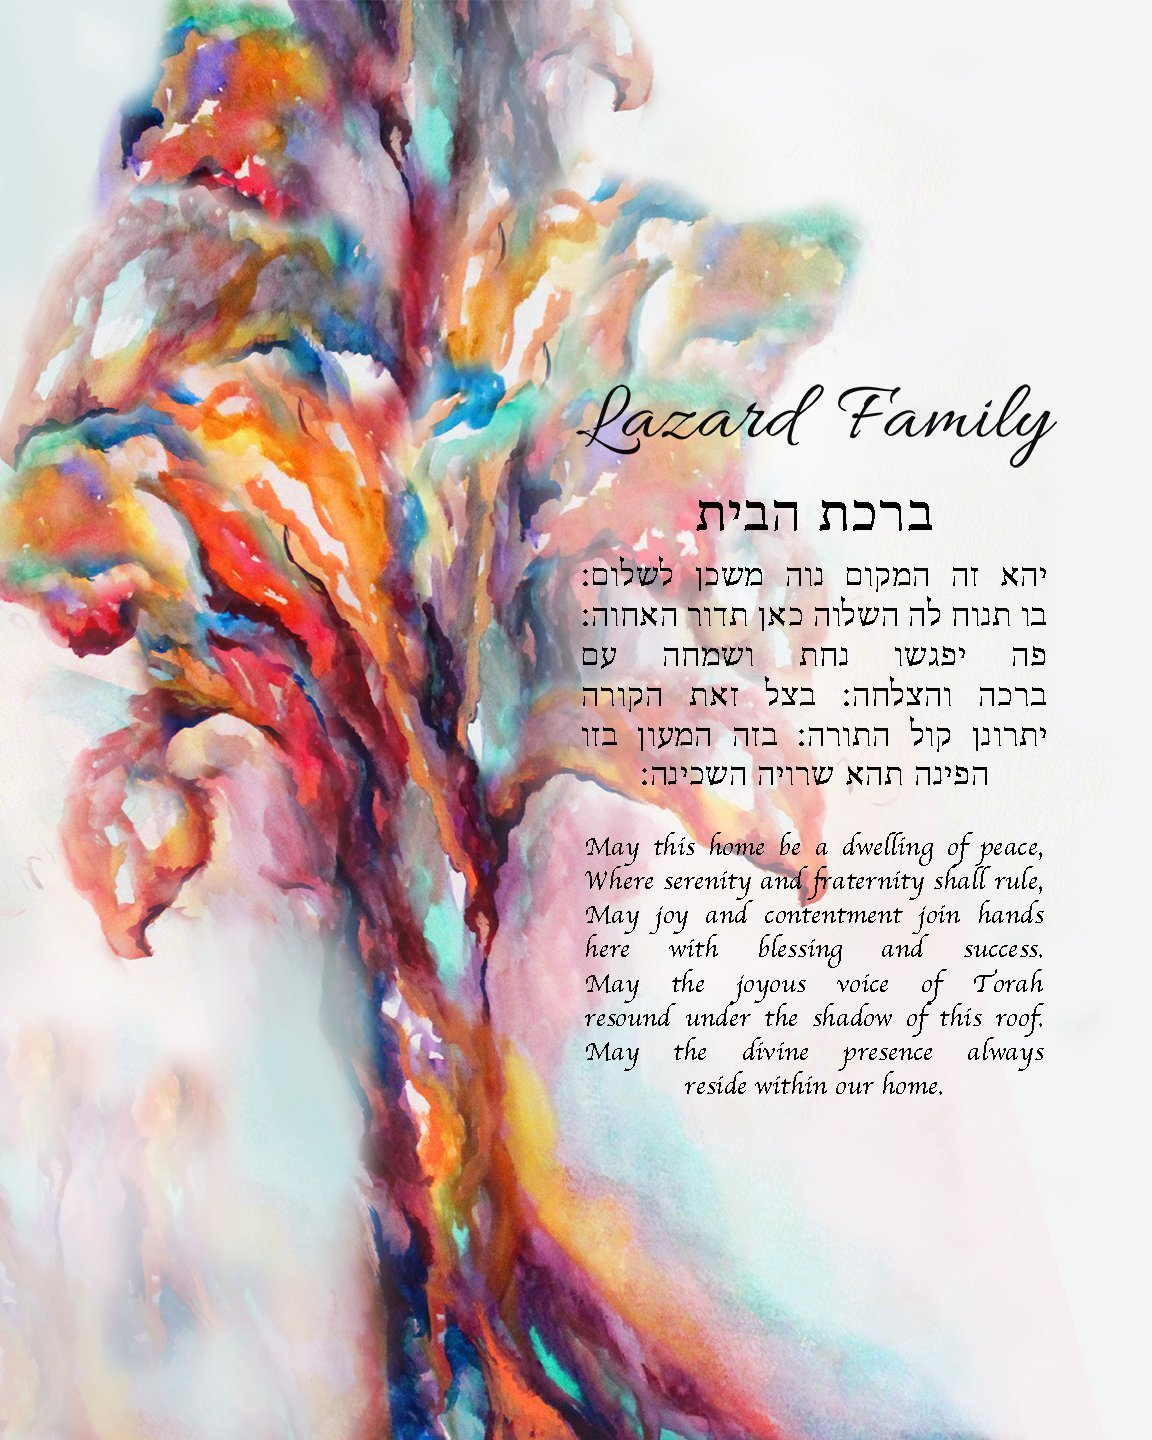 Tree of Life Customized Hebrew and English Jewish Blessing for the Home